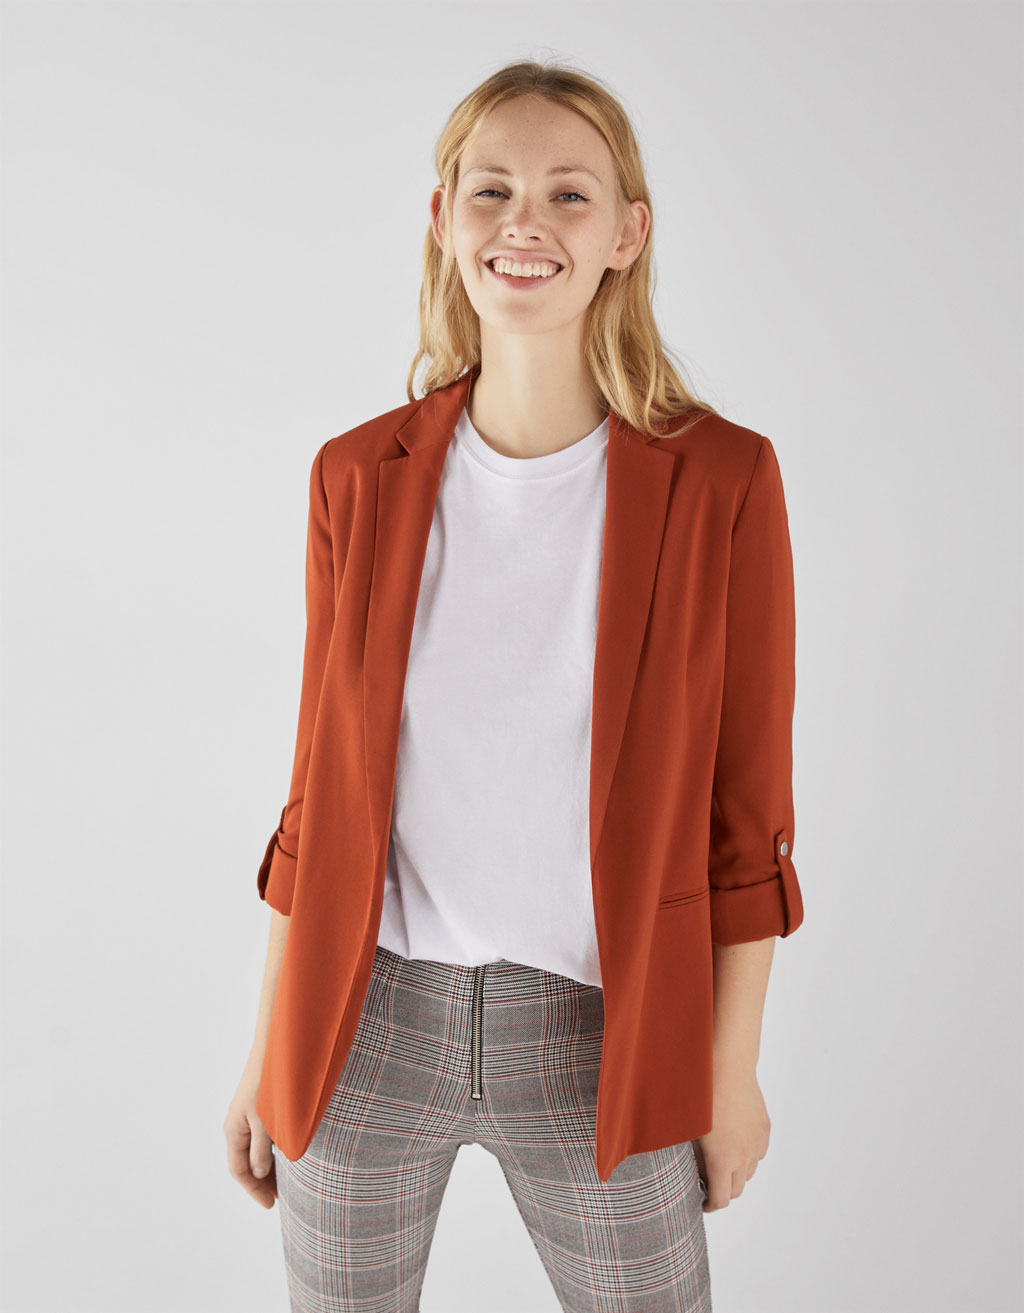 Flowing blazer with rolled-up sleeves